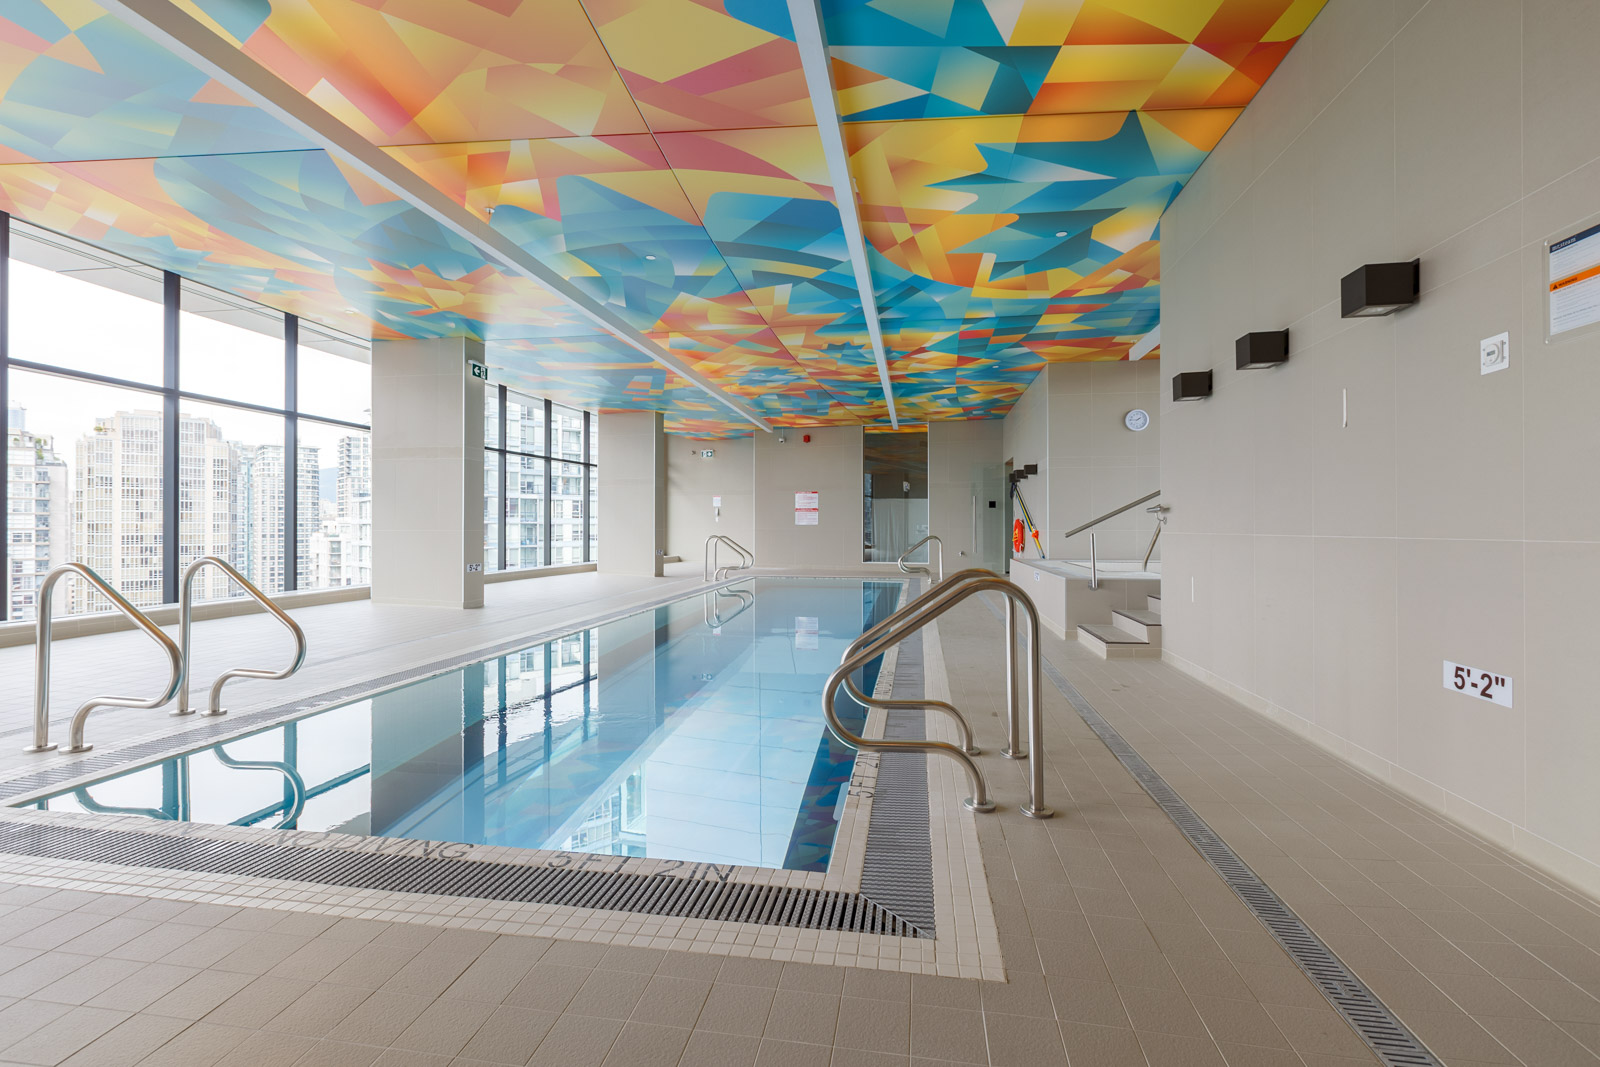 indoor pool in the arc condo building in vancouver with colourful ceiling